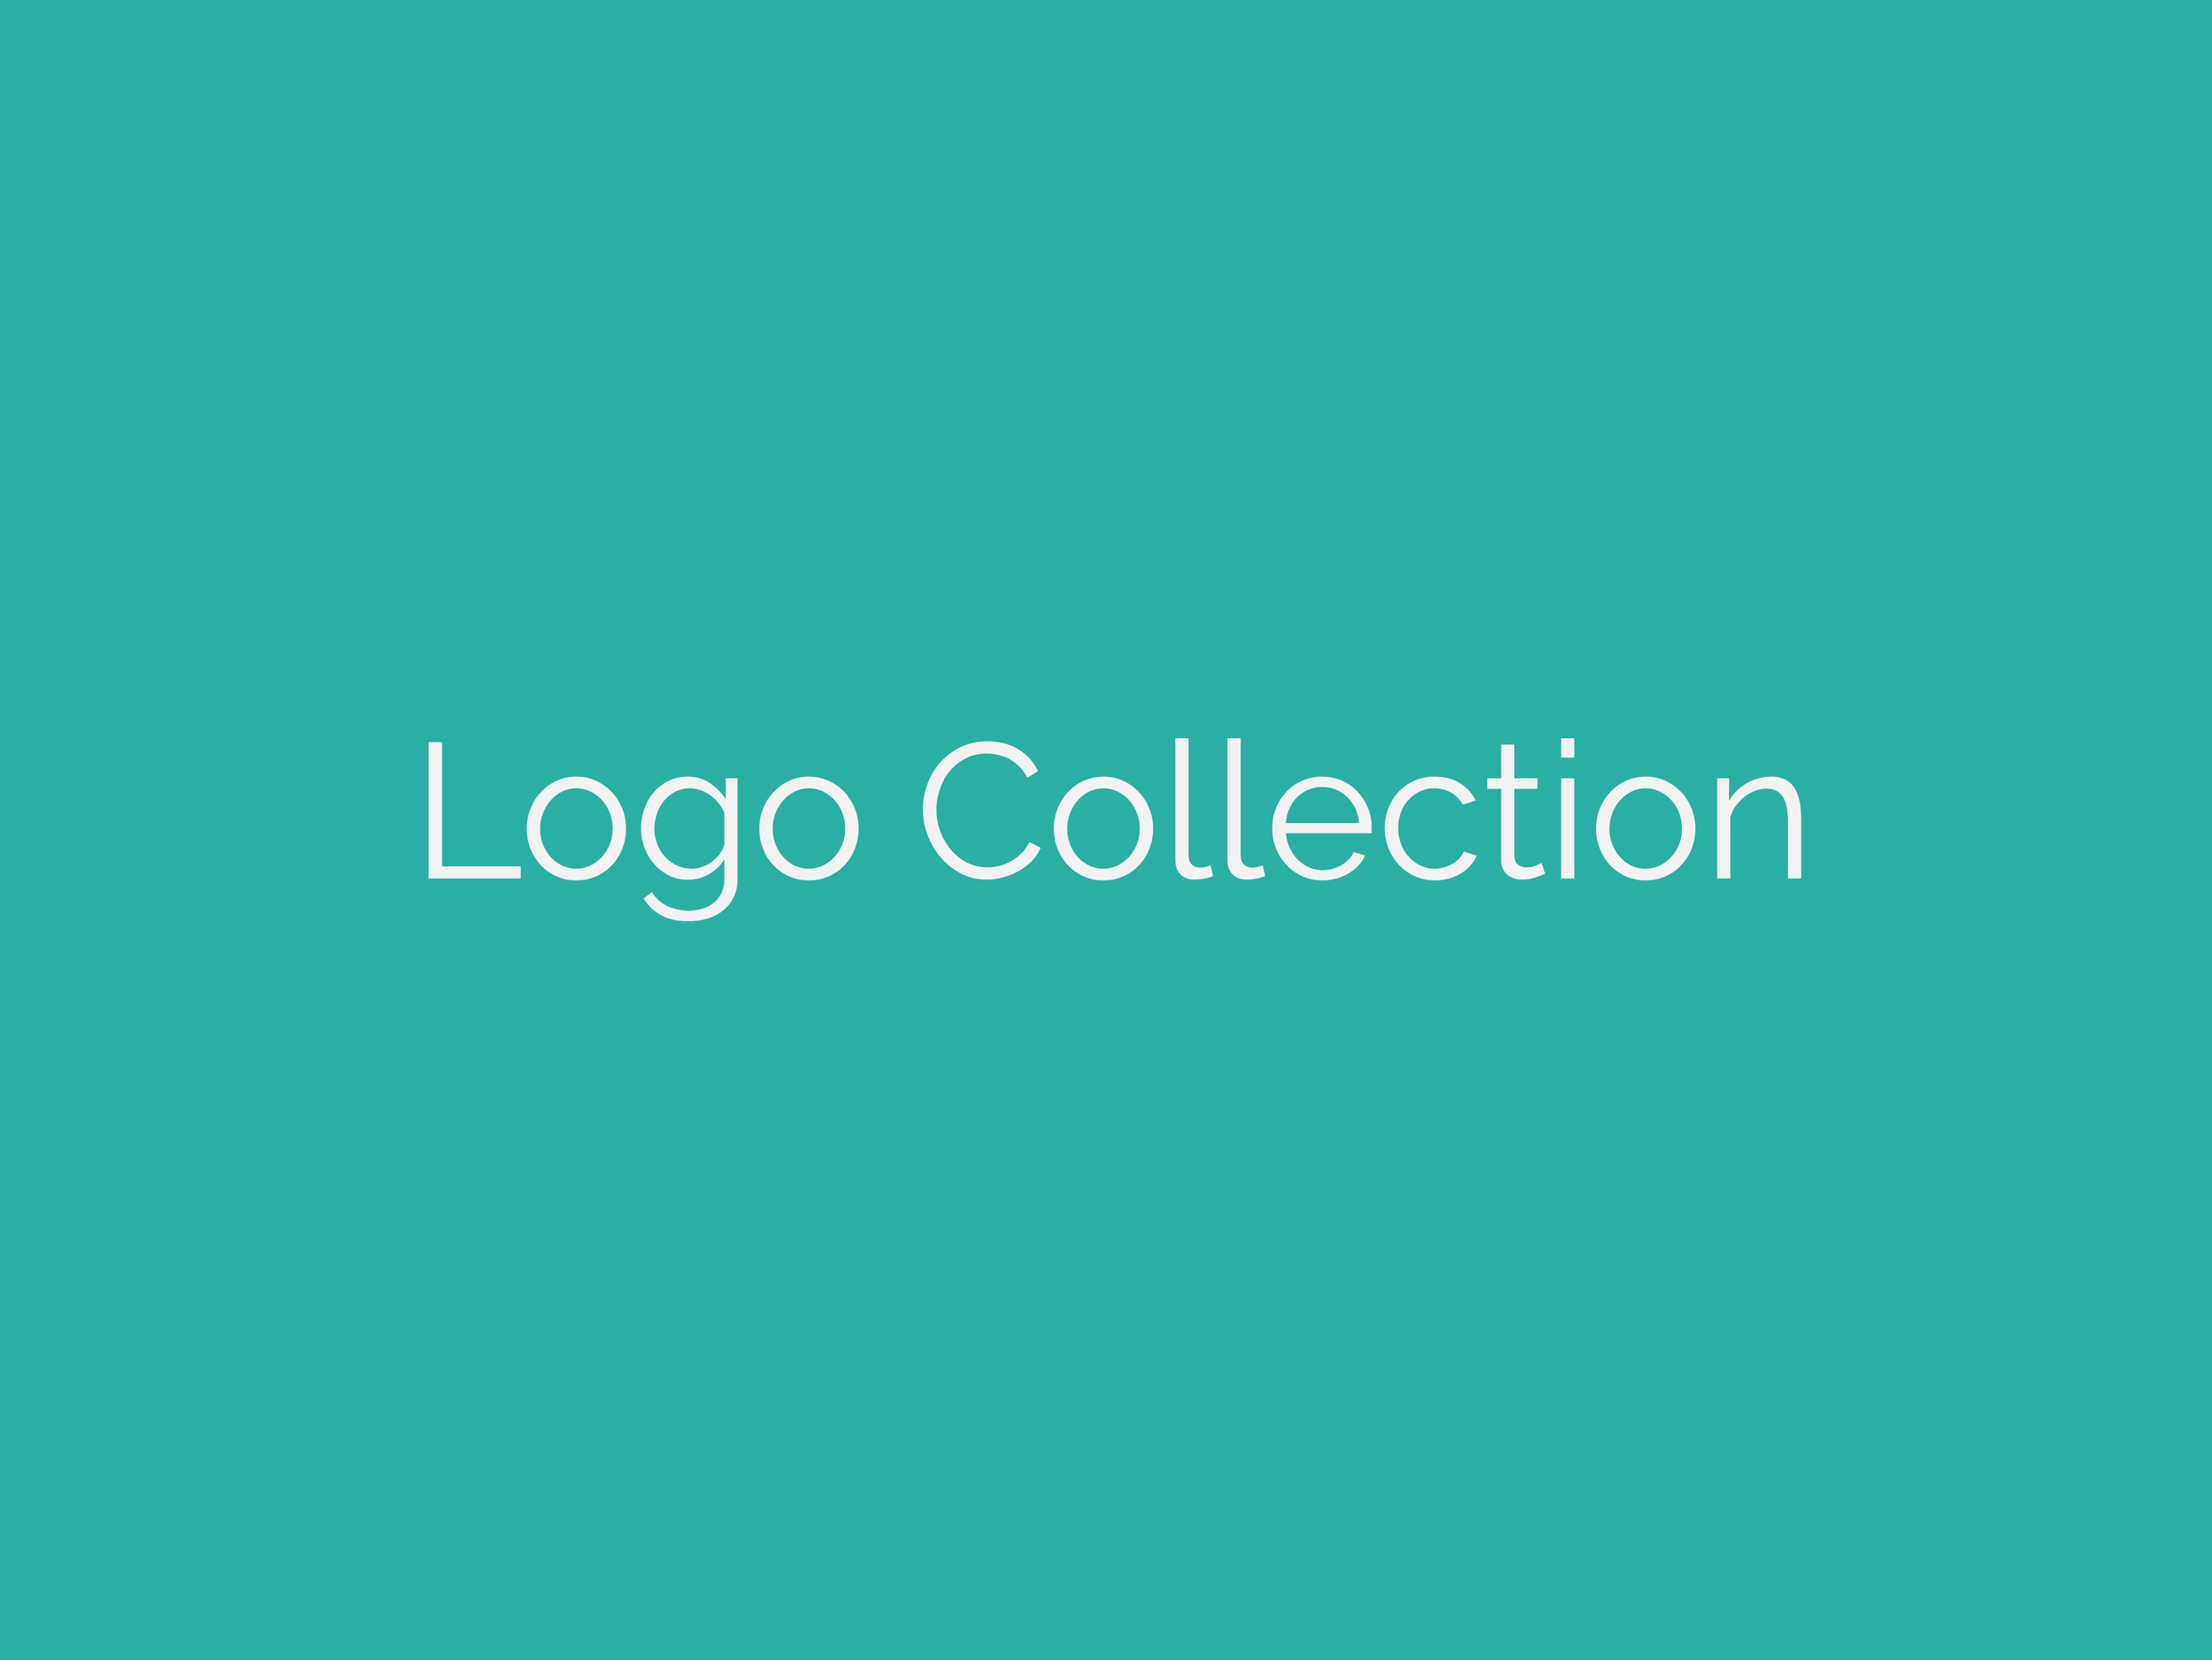 Logo-Collection-TouchUp2019-01.png